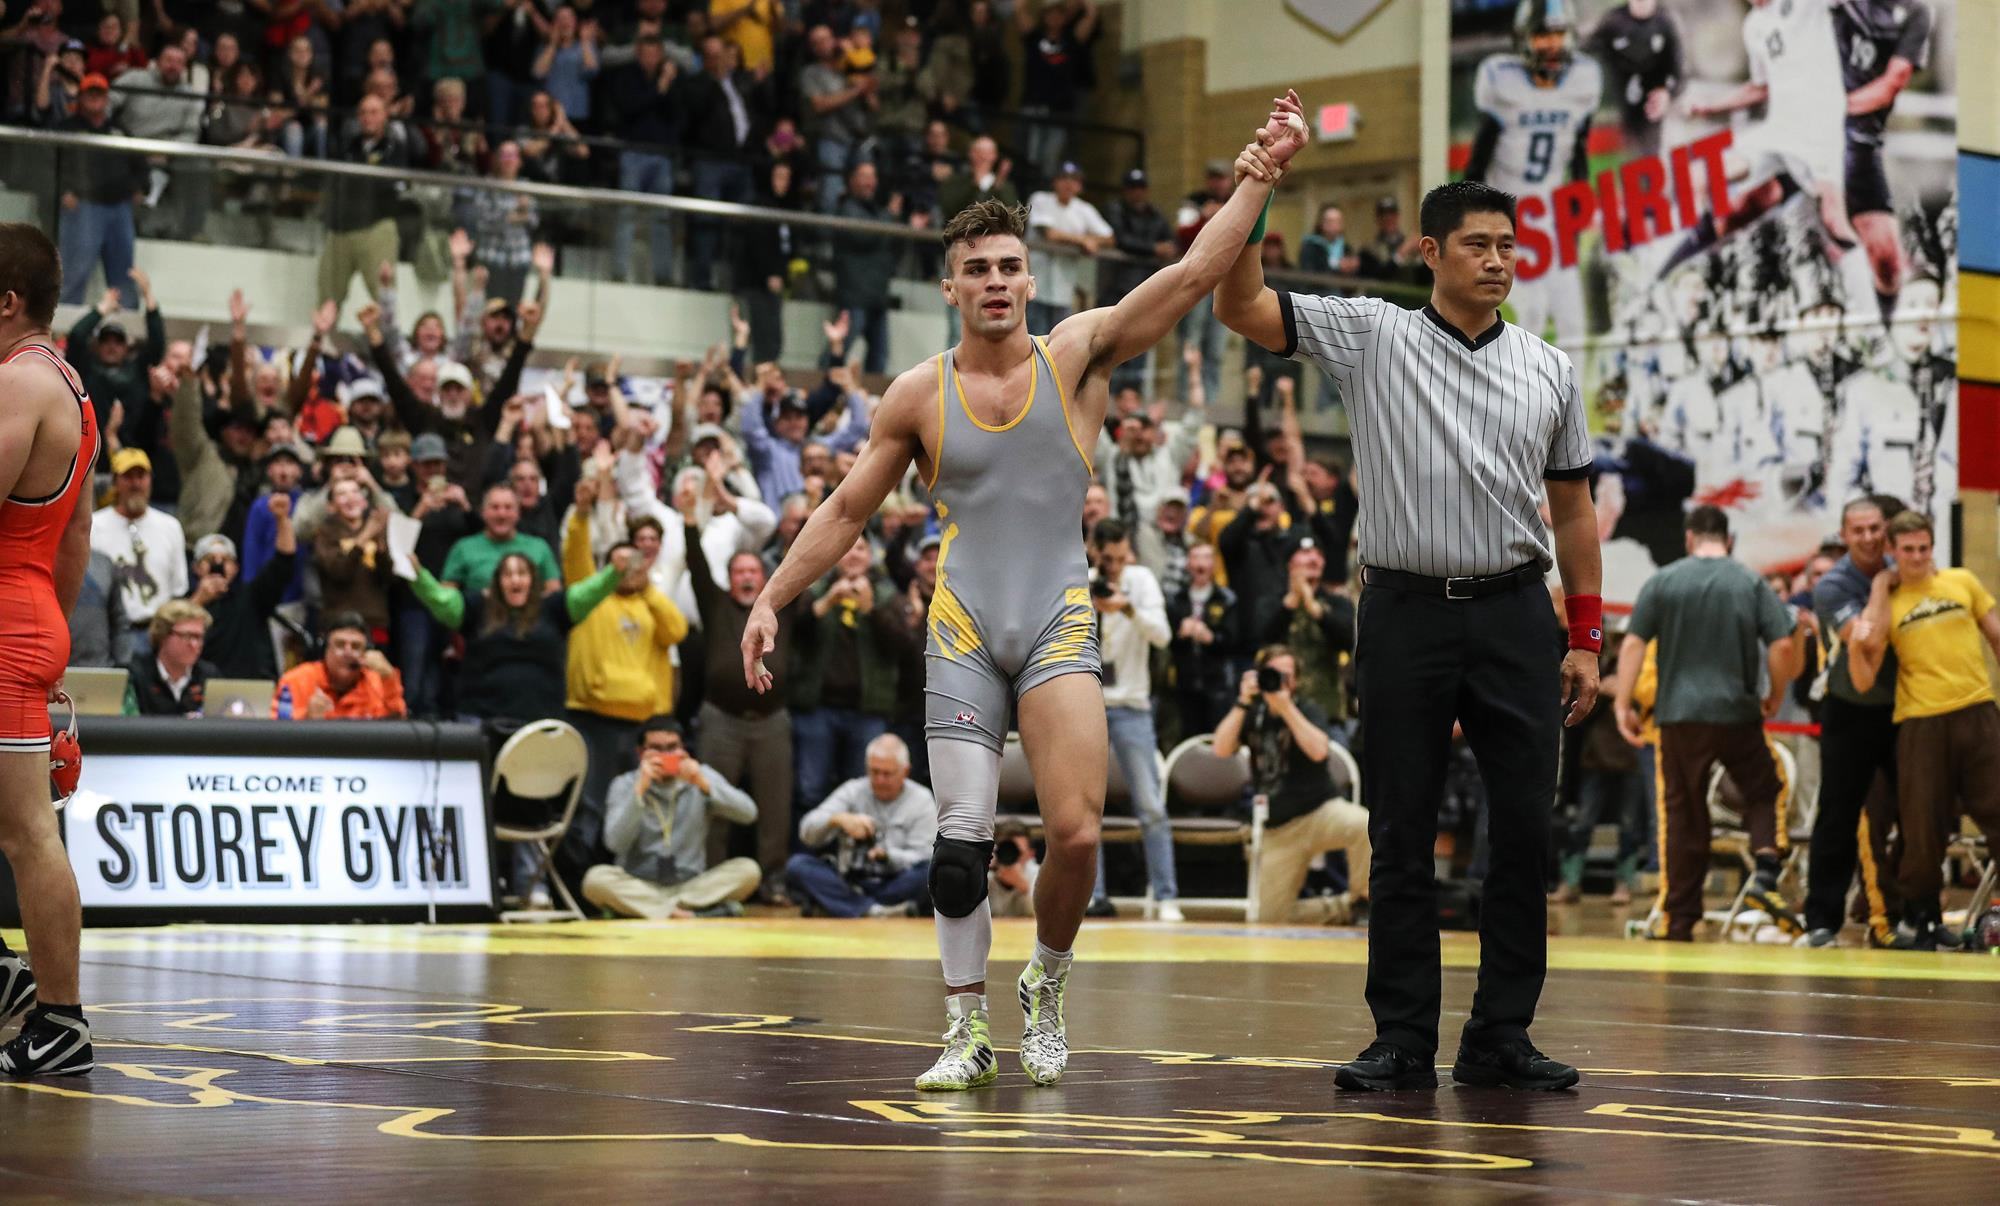 Cowboys Split matches with No. 3 Oklahoma State but Drop Dual, 20-15